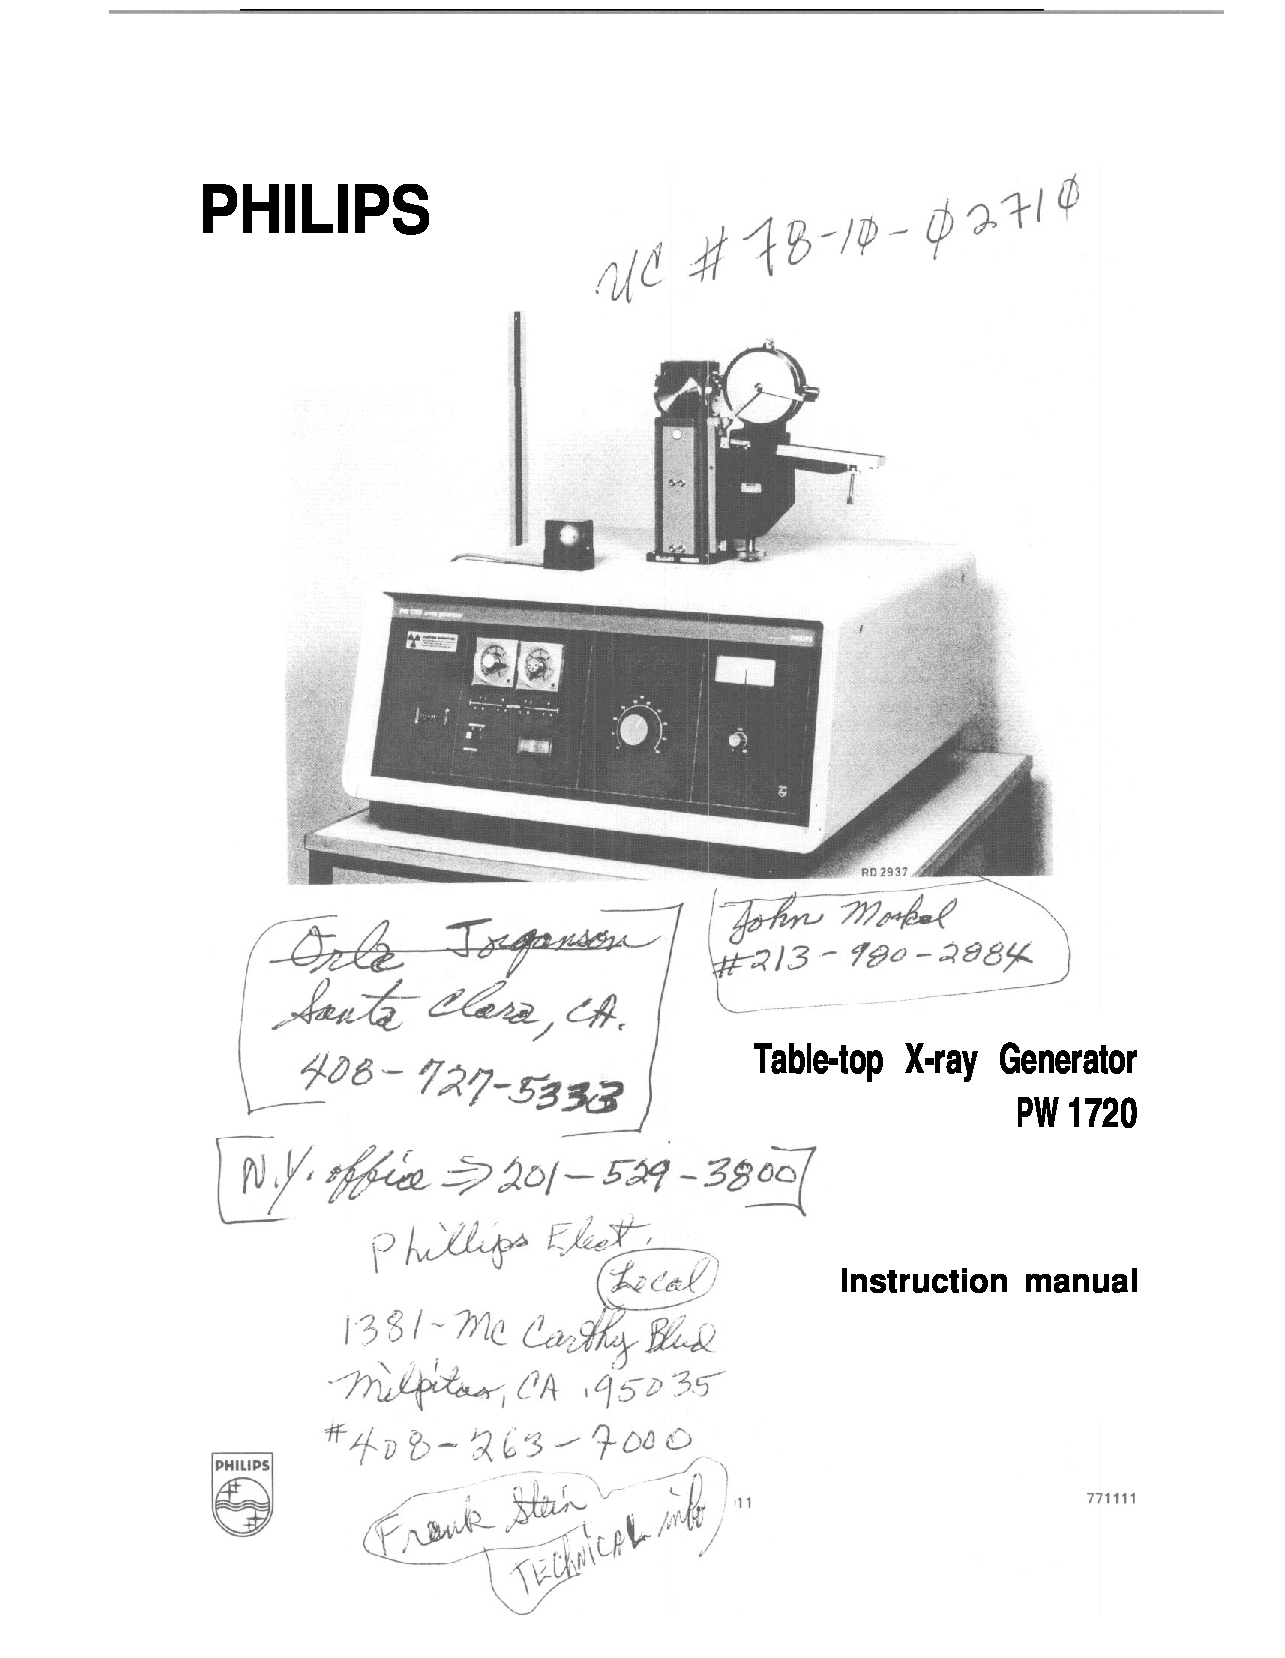 Philips PW 1720 Manual